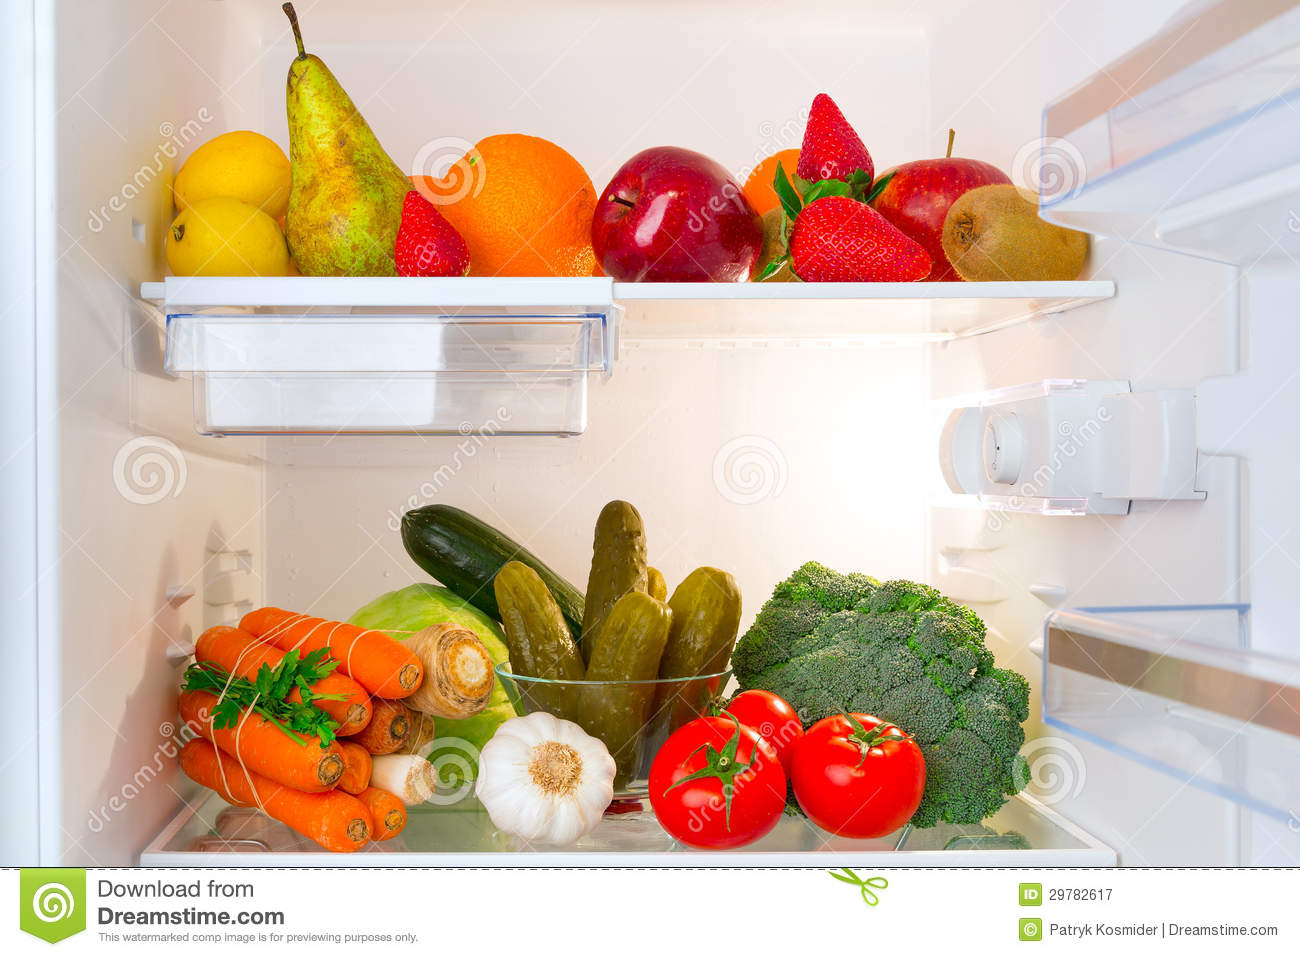 Healthy Fruits And Vegetables In The Fridge Stock Image